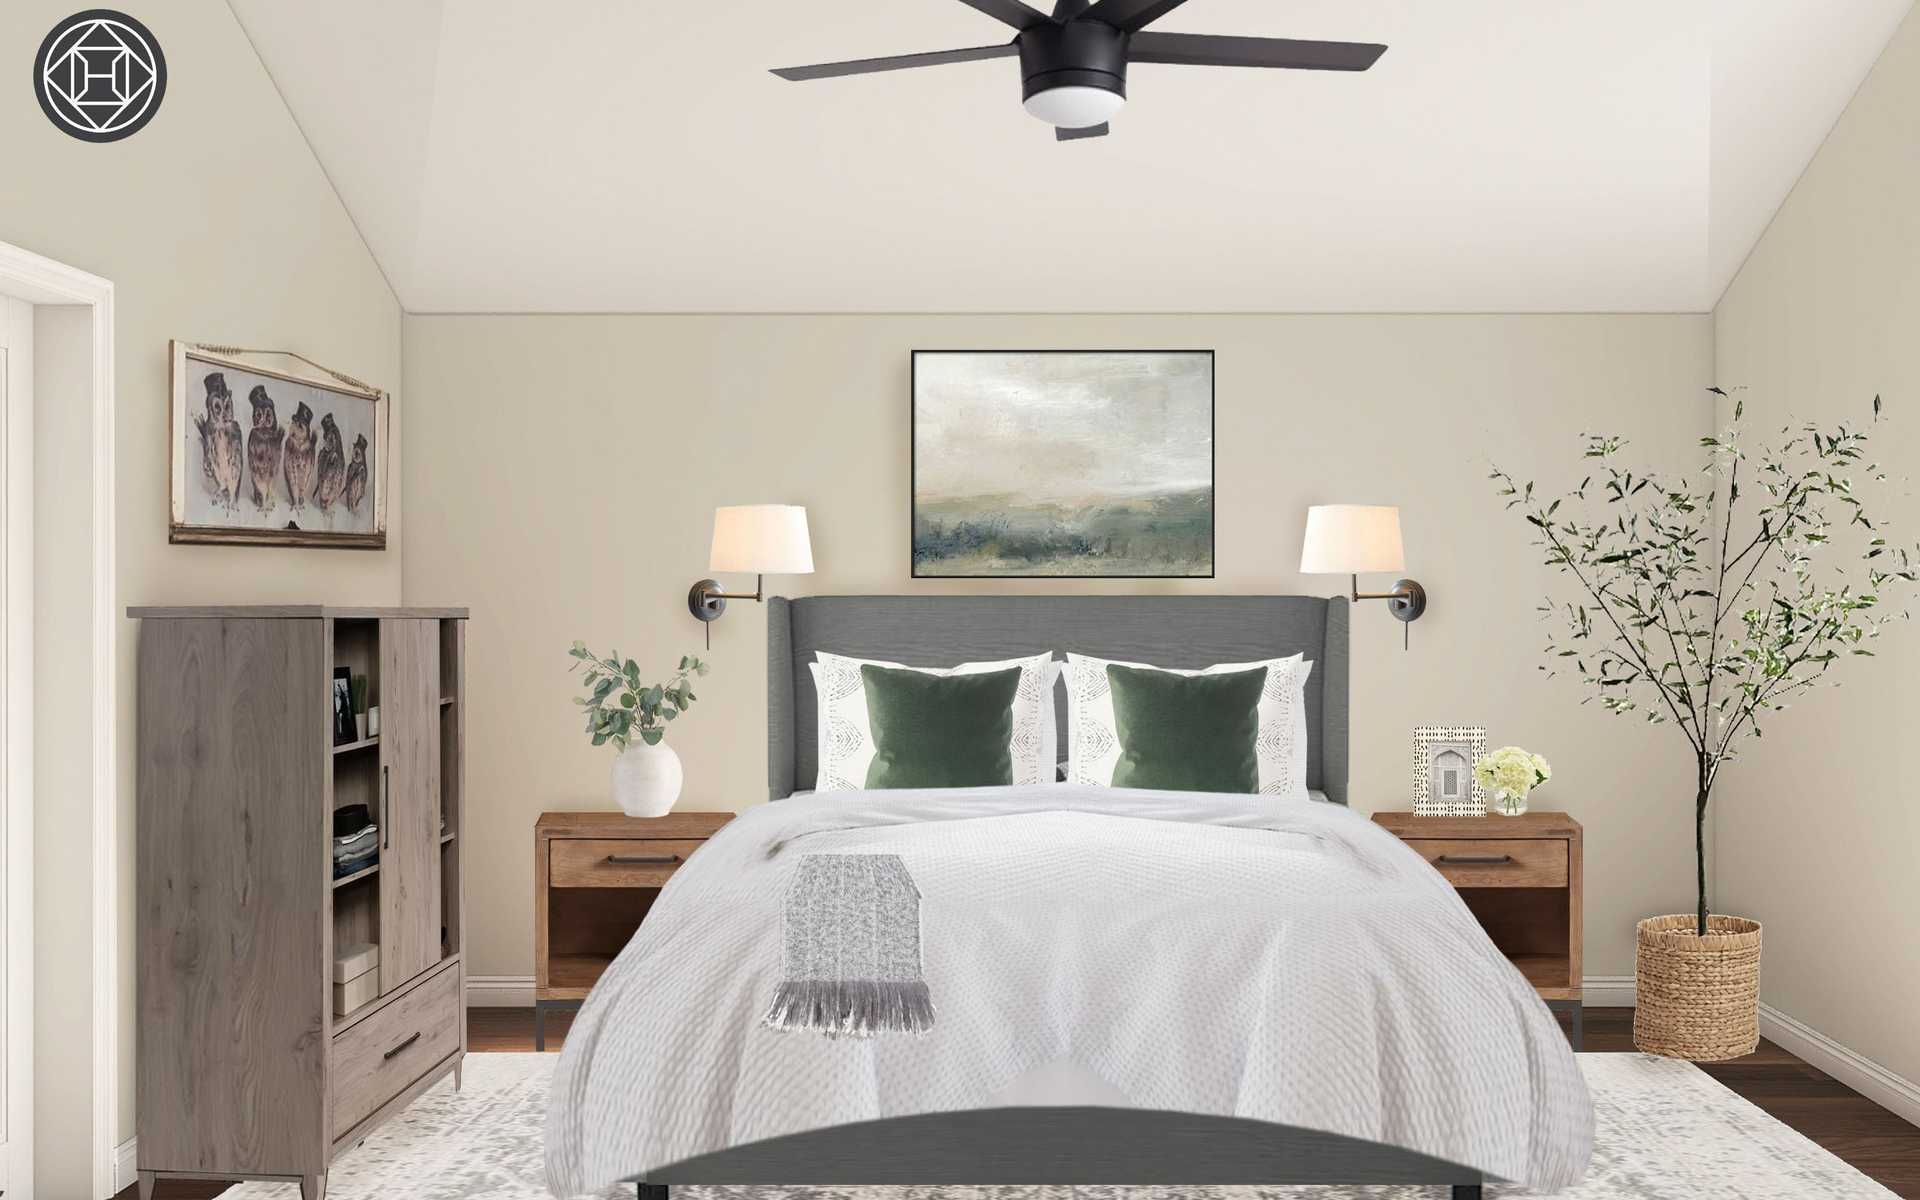 Contemporary Classic Bedroom Design By Havenly Interior Designer Tara Classic Bedroom Design Bedroom Design Interior Design